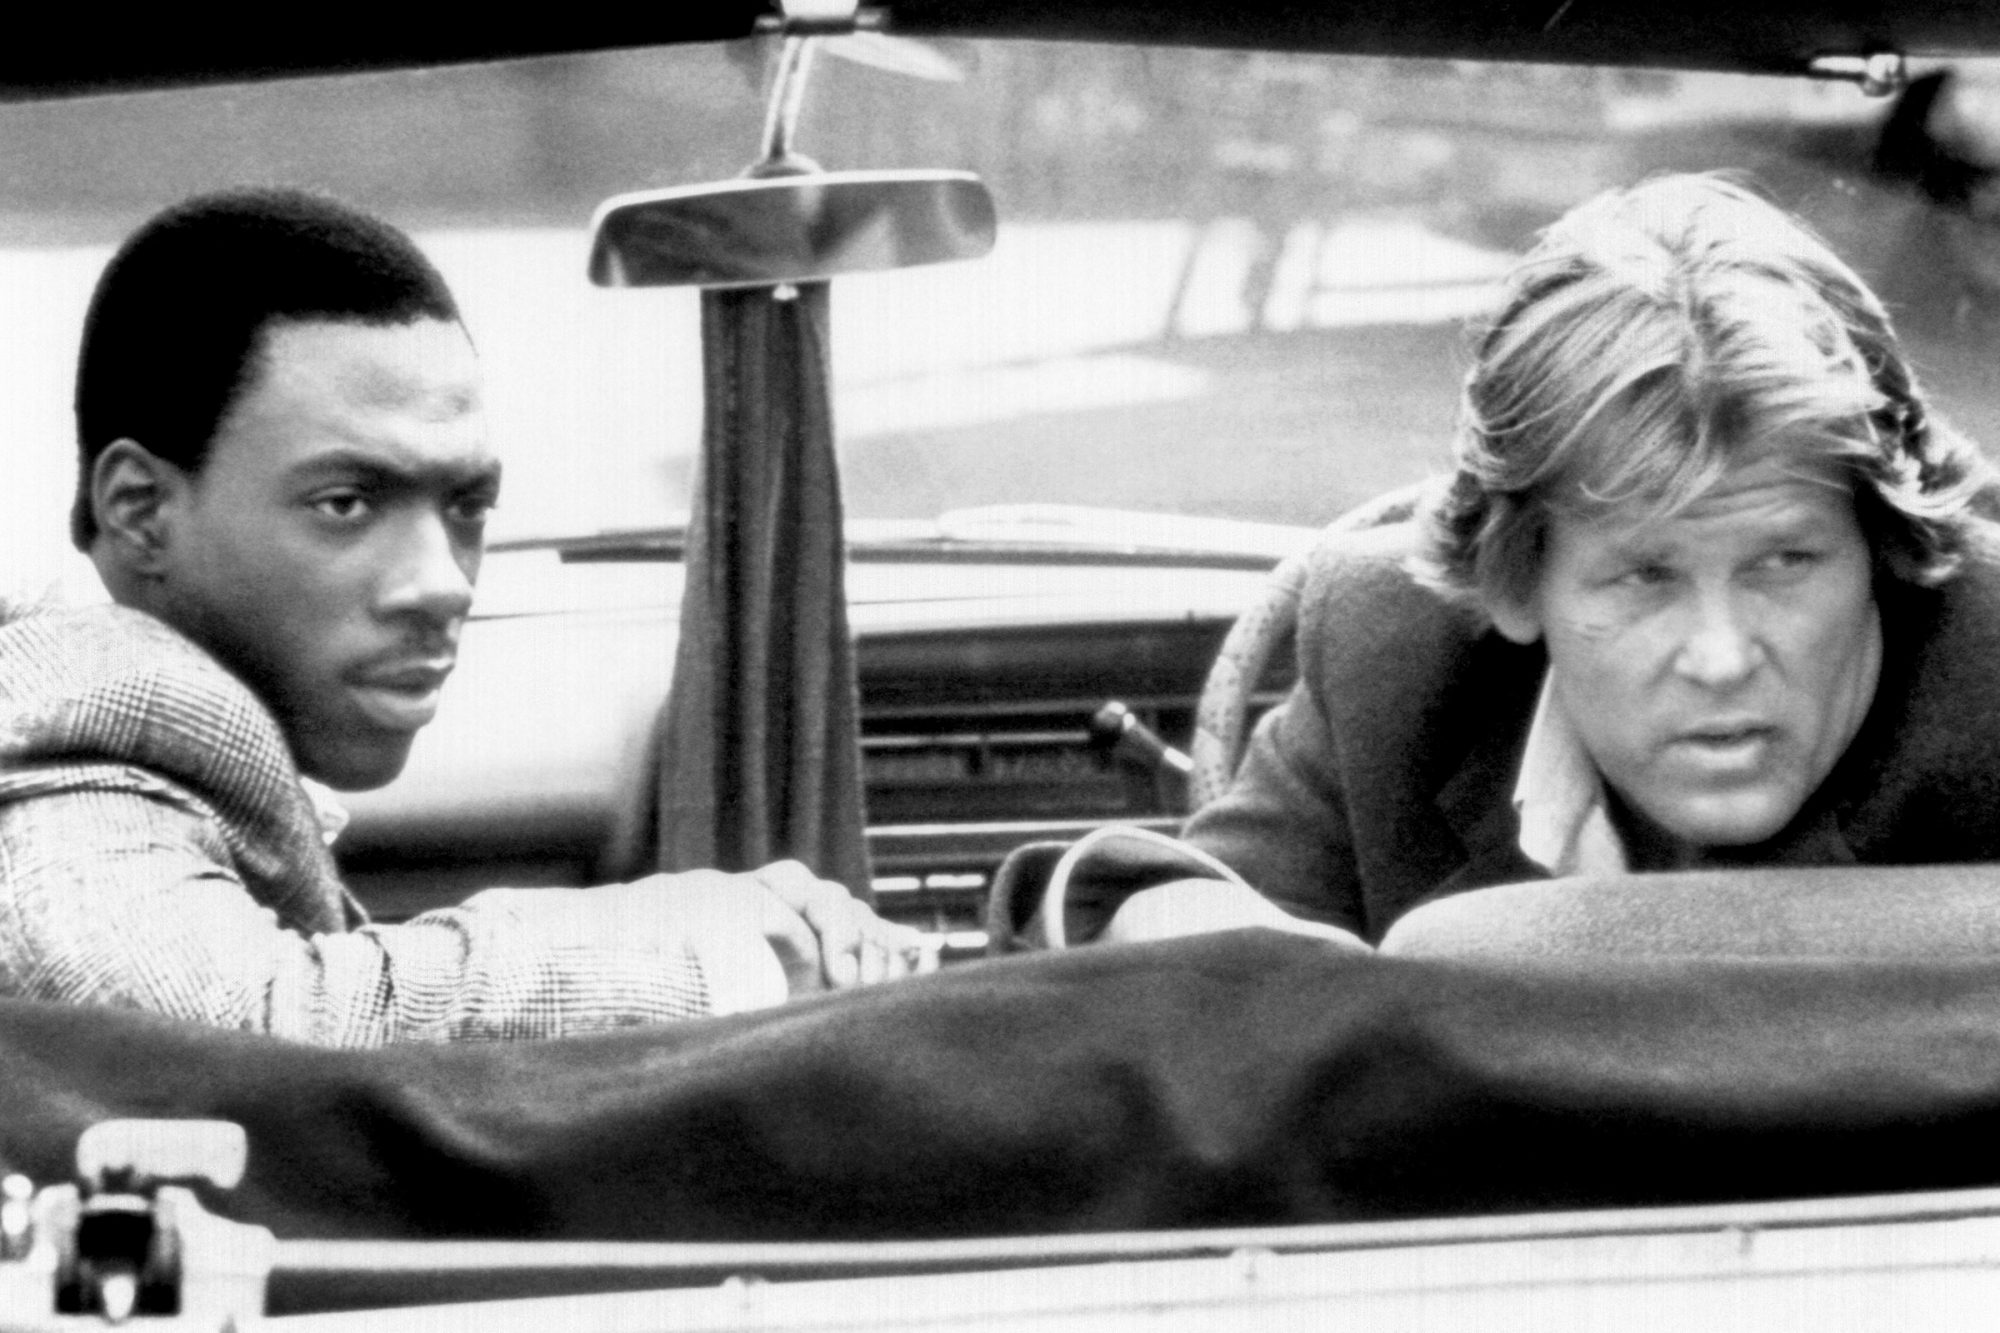 48 HOURS, (aka 48 HRS.), from left, Eddie Murphy, Nick Nolte, 1982, ©Paramount Pictures/Courtesy: Ev